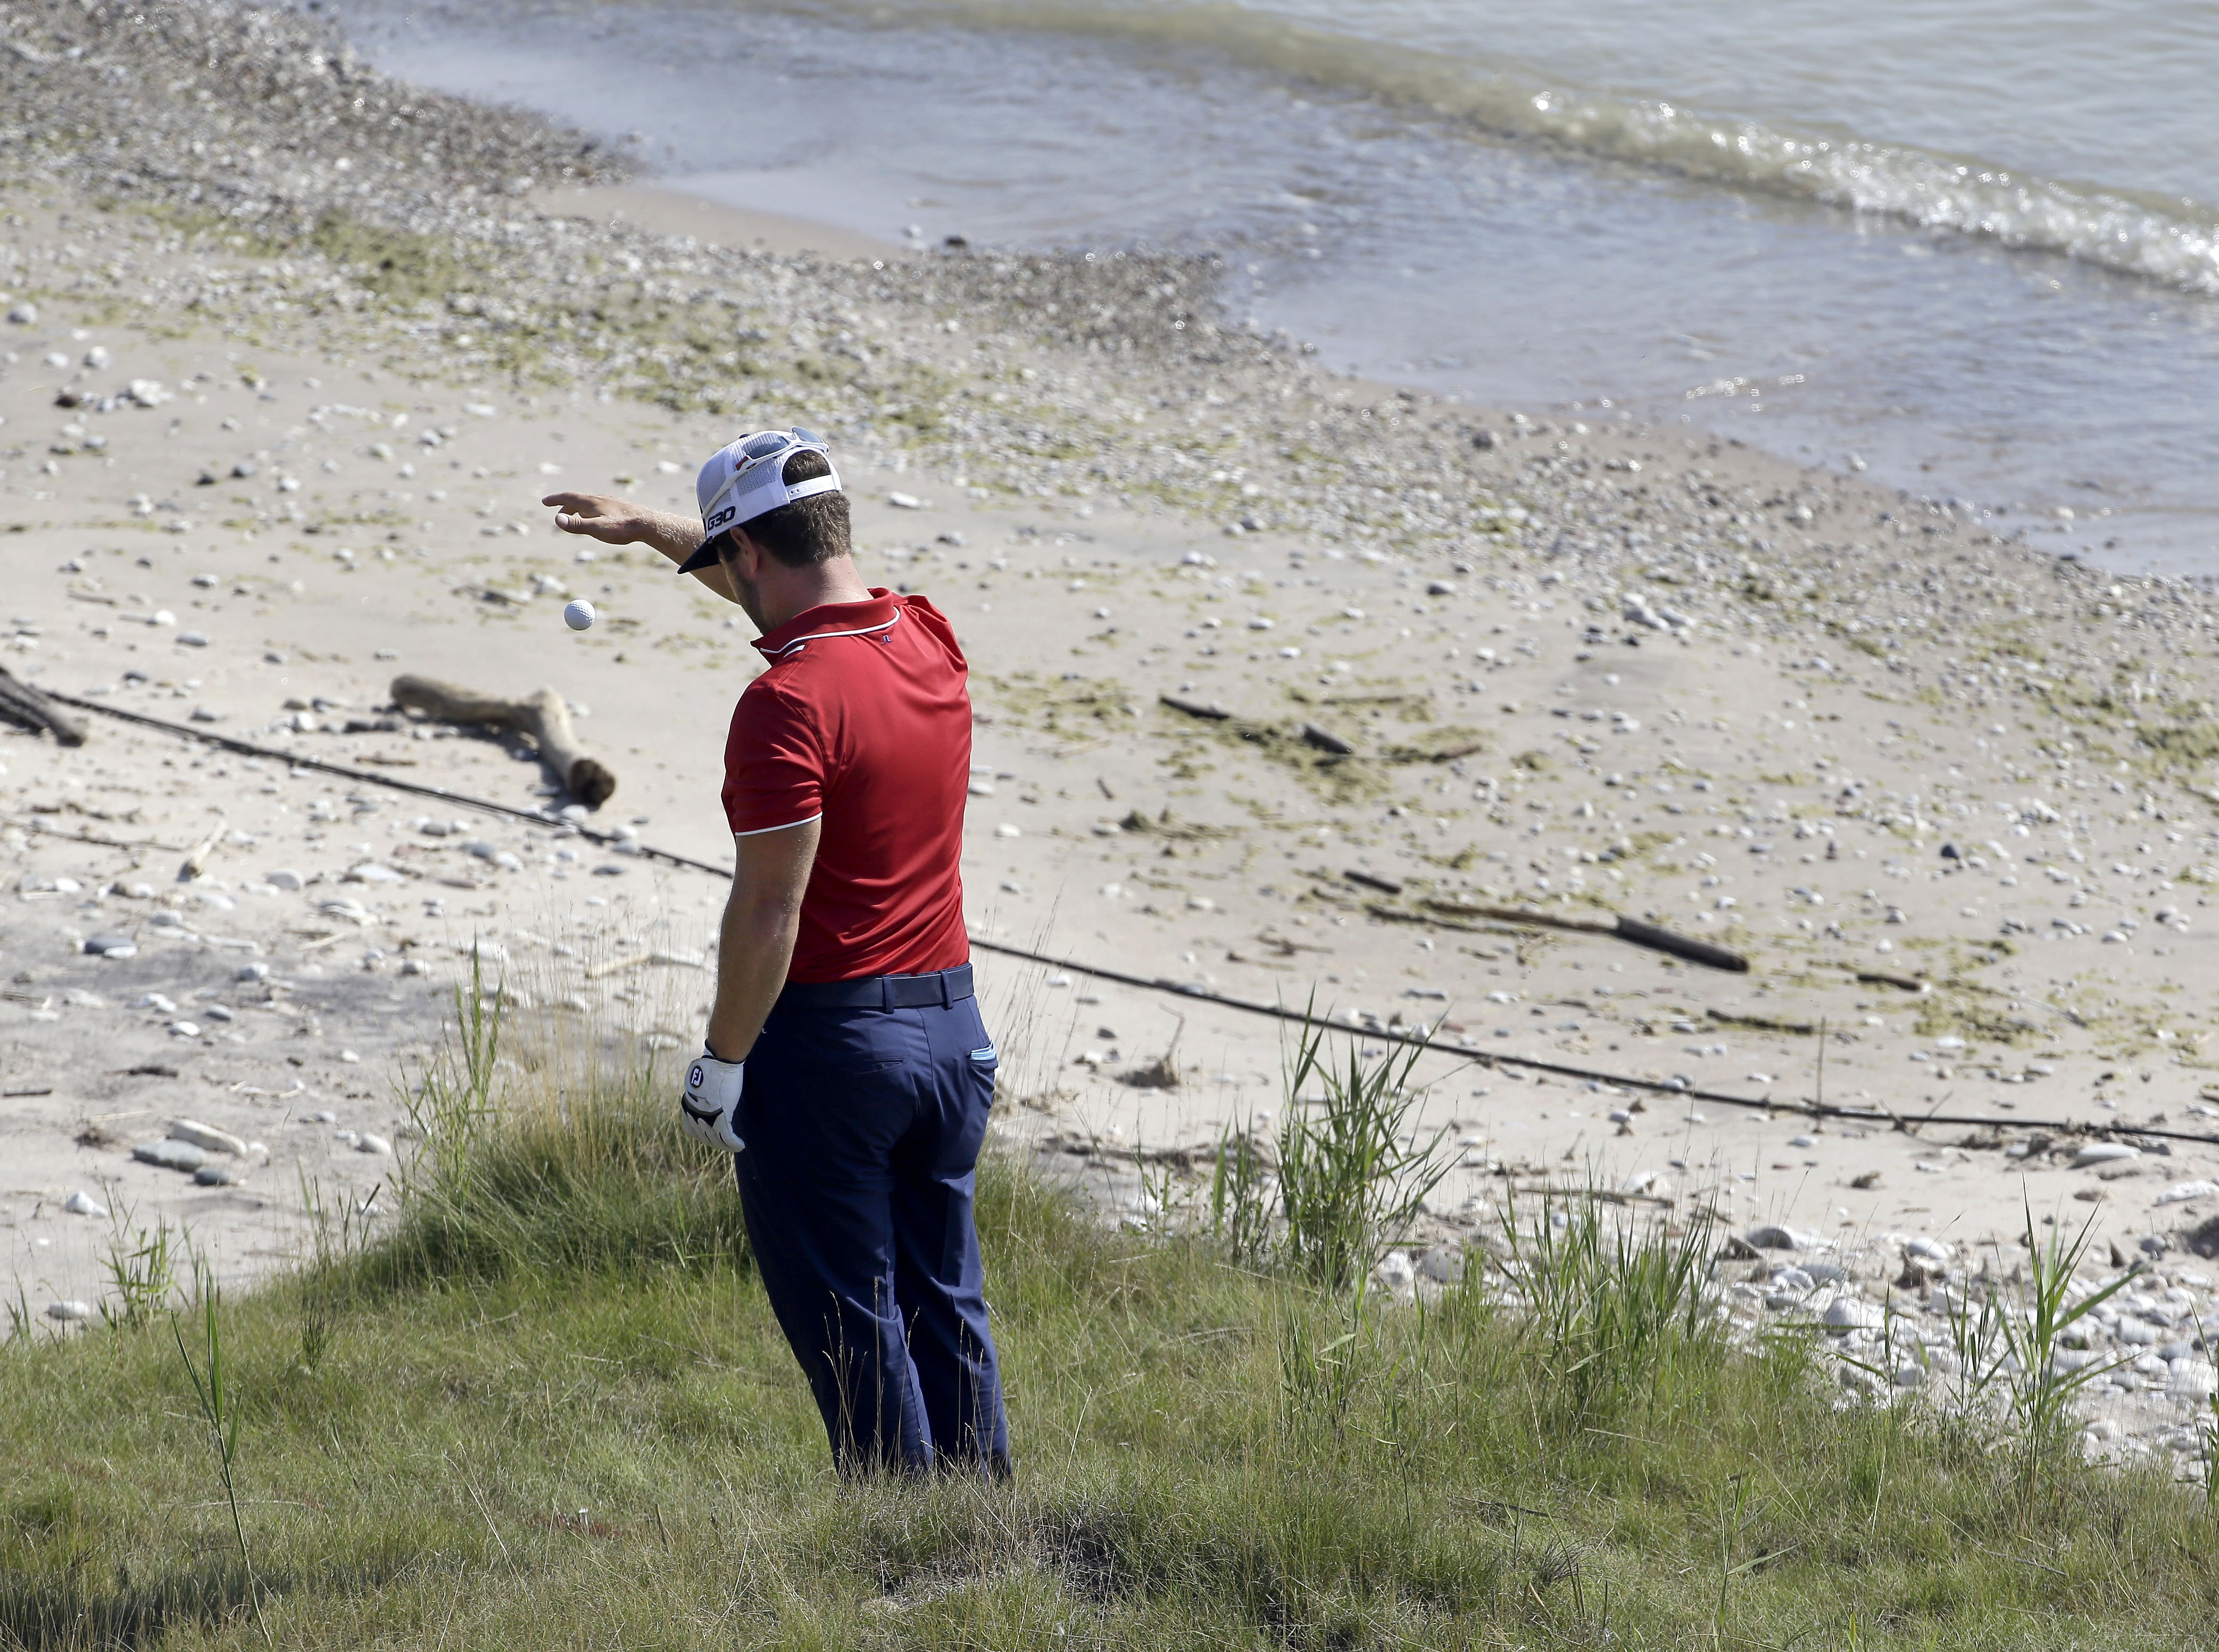 CORRECTS TO SEVENTH HOLE, NOT 17TH - David Lingmerth, of Sweden, takes a drop on the seventh hole during the second round of the PGA Championship golf tournament Friday, Aug. 14, 2015, at Whistling Straits in Haven, Wis. (AP Photo/Brynn Anderson)